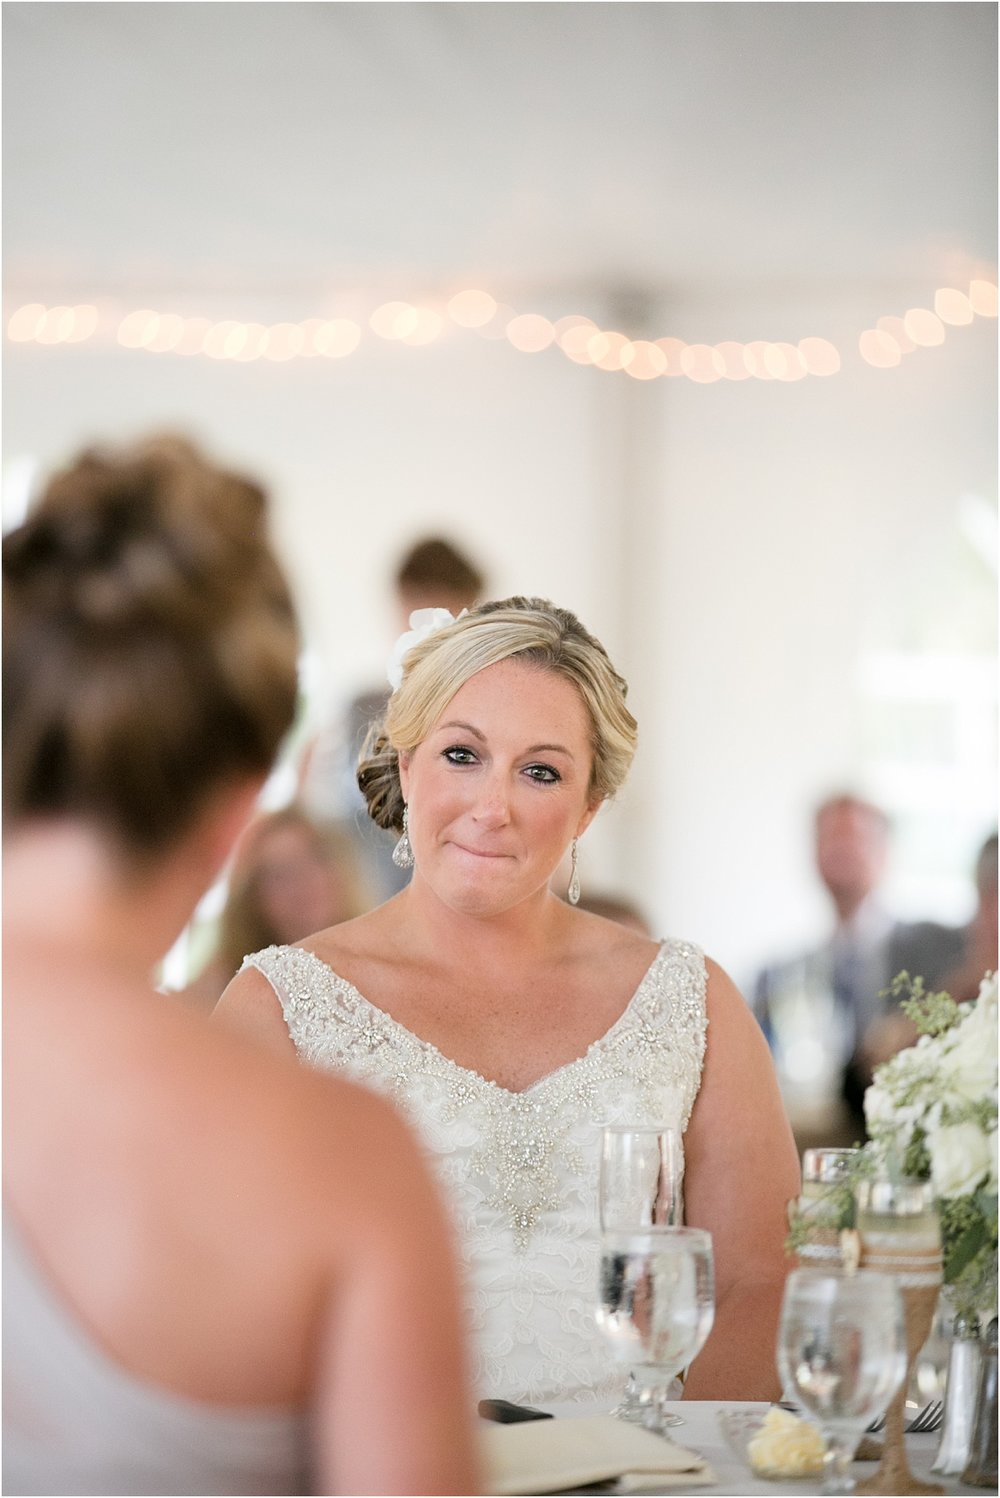 WHITNEYSINNWEDDINGPHOTOGRAPHER0017.JPG